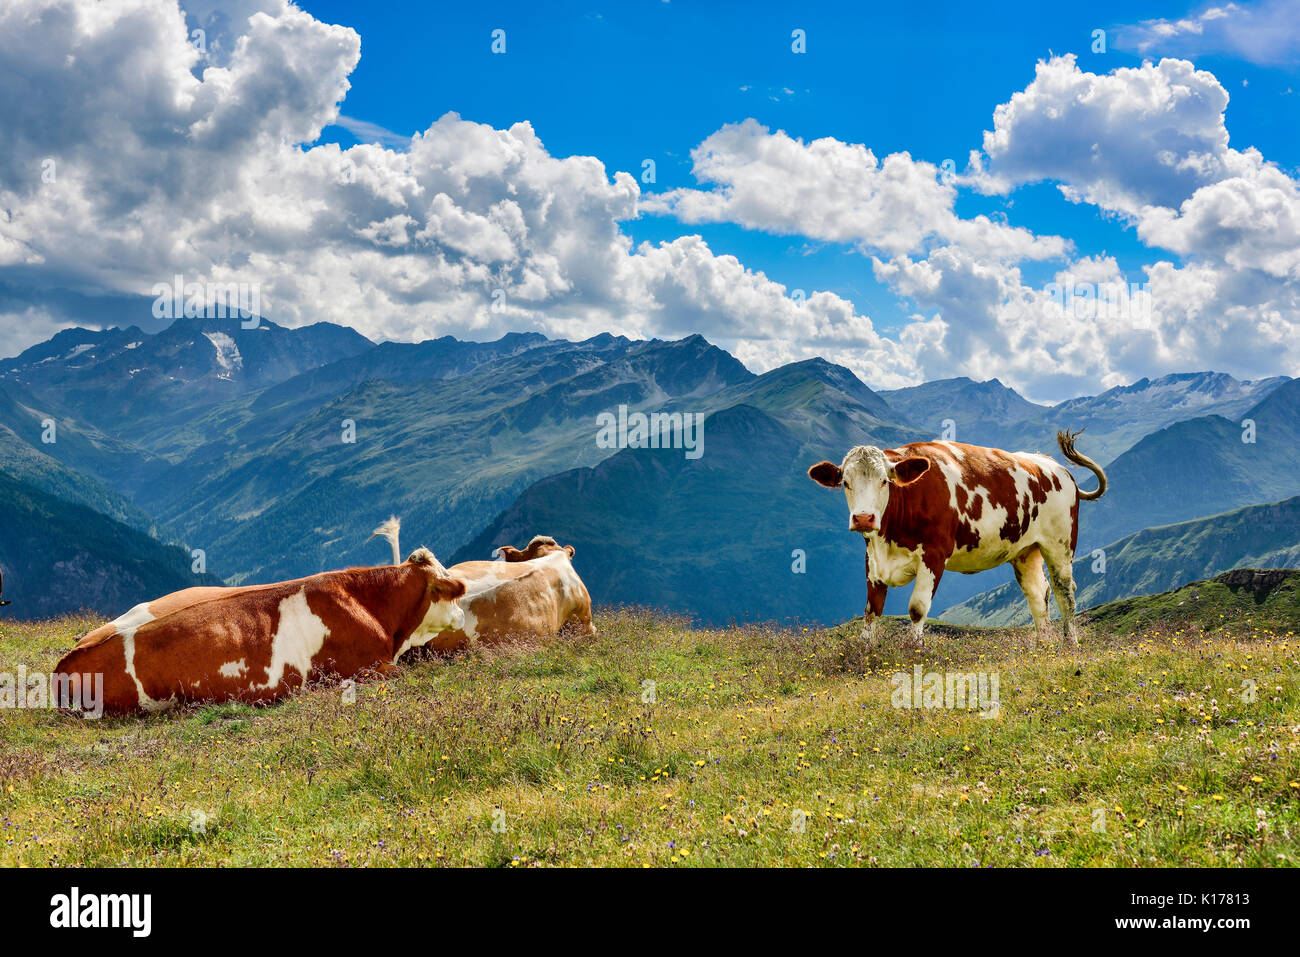 Les vaches sur l'alpage Alp Photo Stock